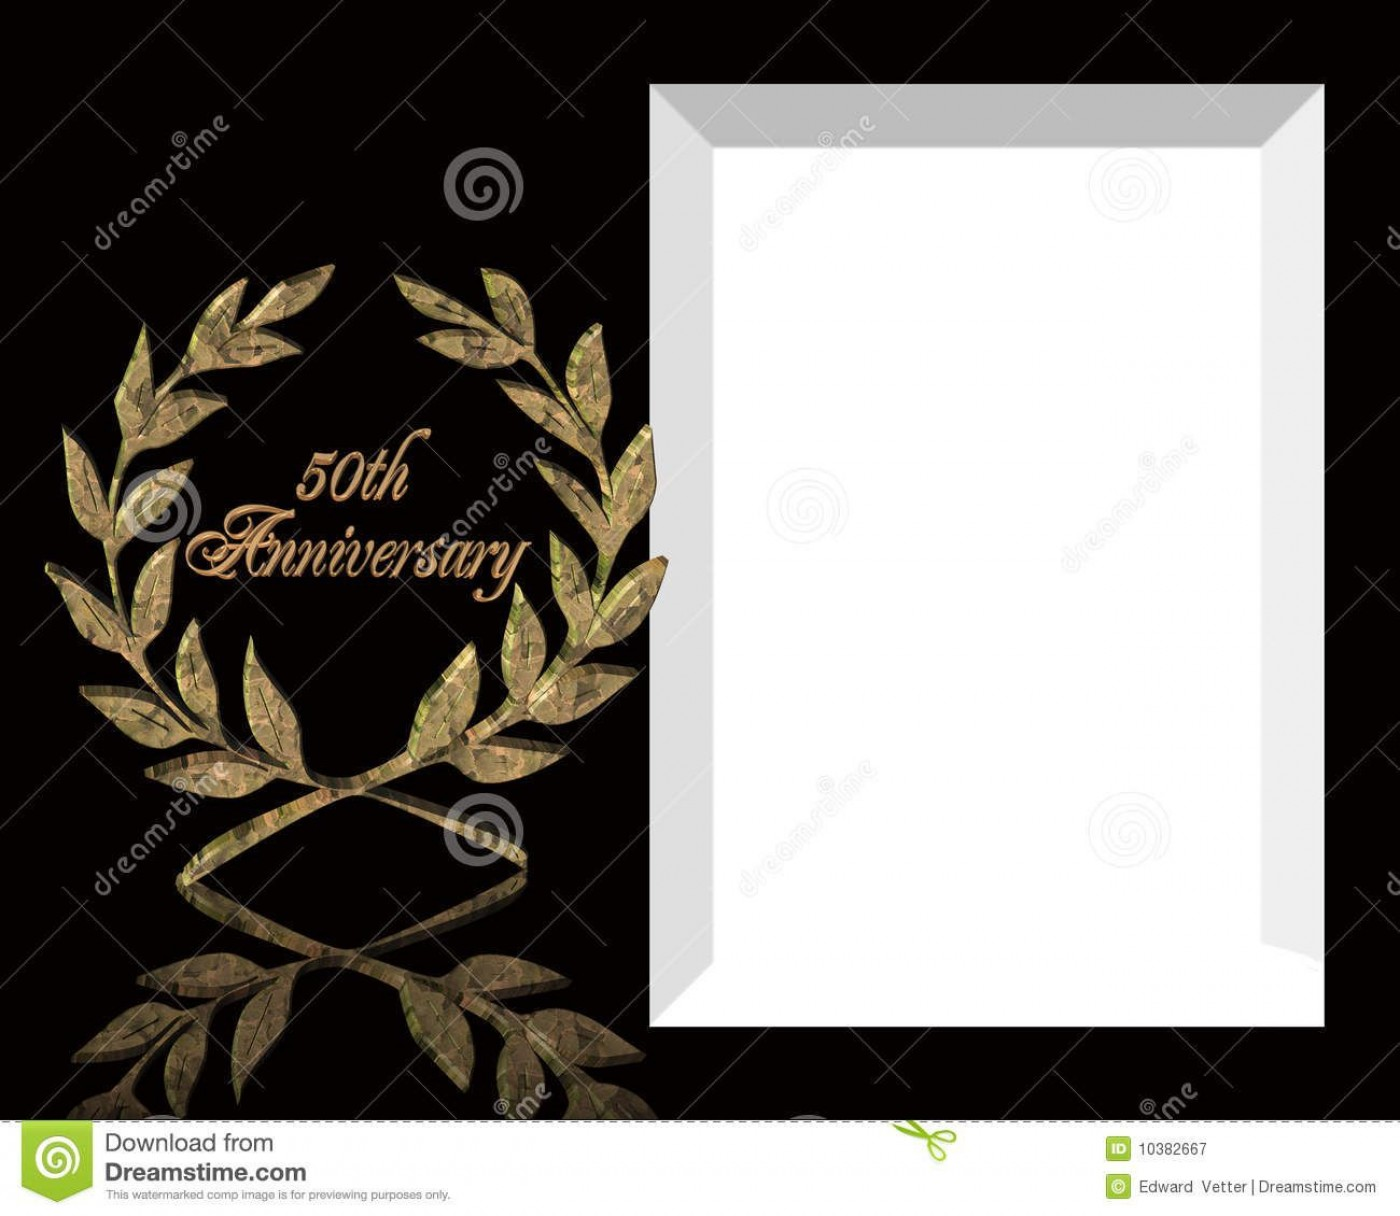 005 Exceptional 50th Anniversary Invitation Template Image  Wedding Microsoft Word Free Download1400